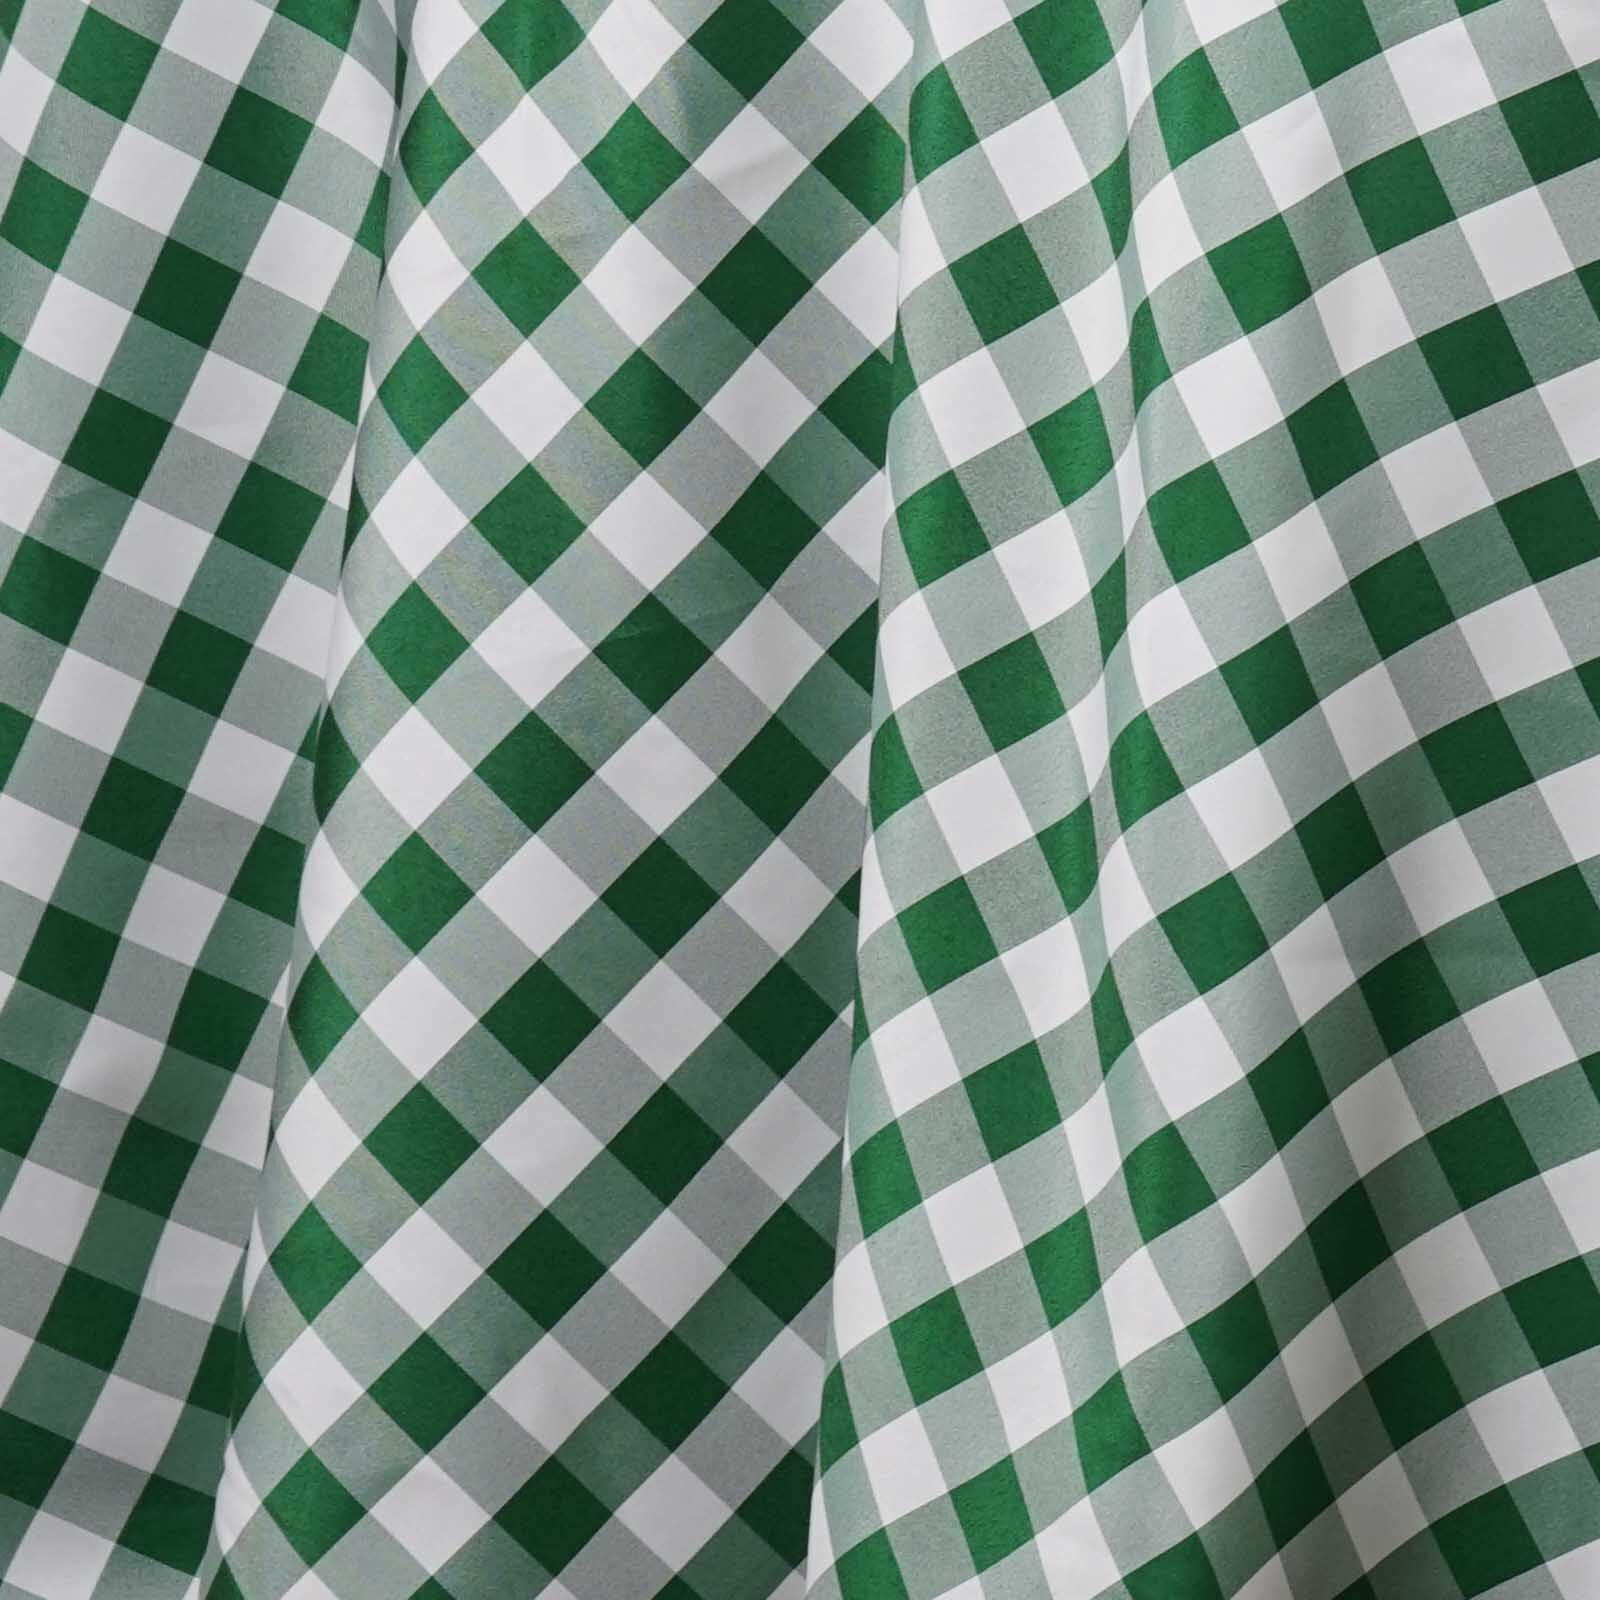 120 Quot White Green Round Checkered Gingham Polyester Picnic